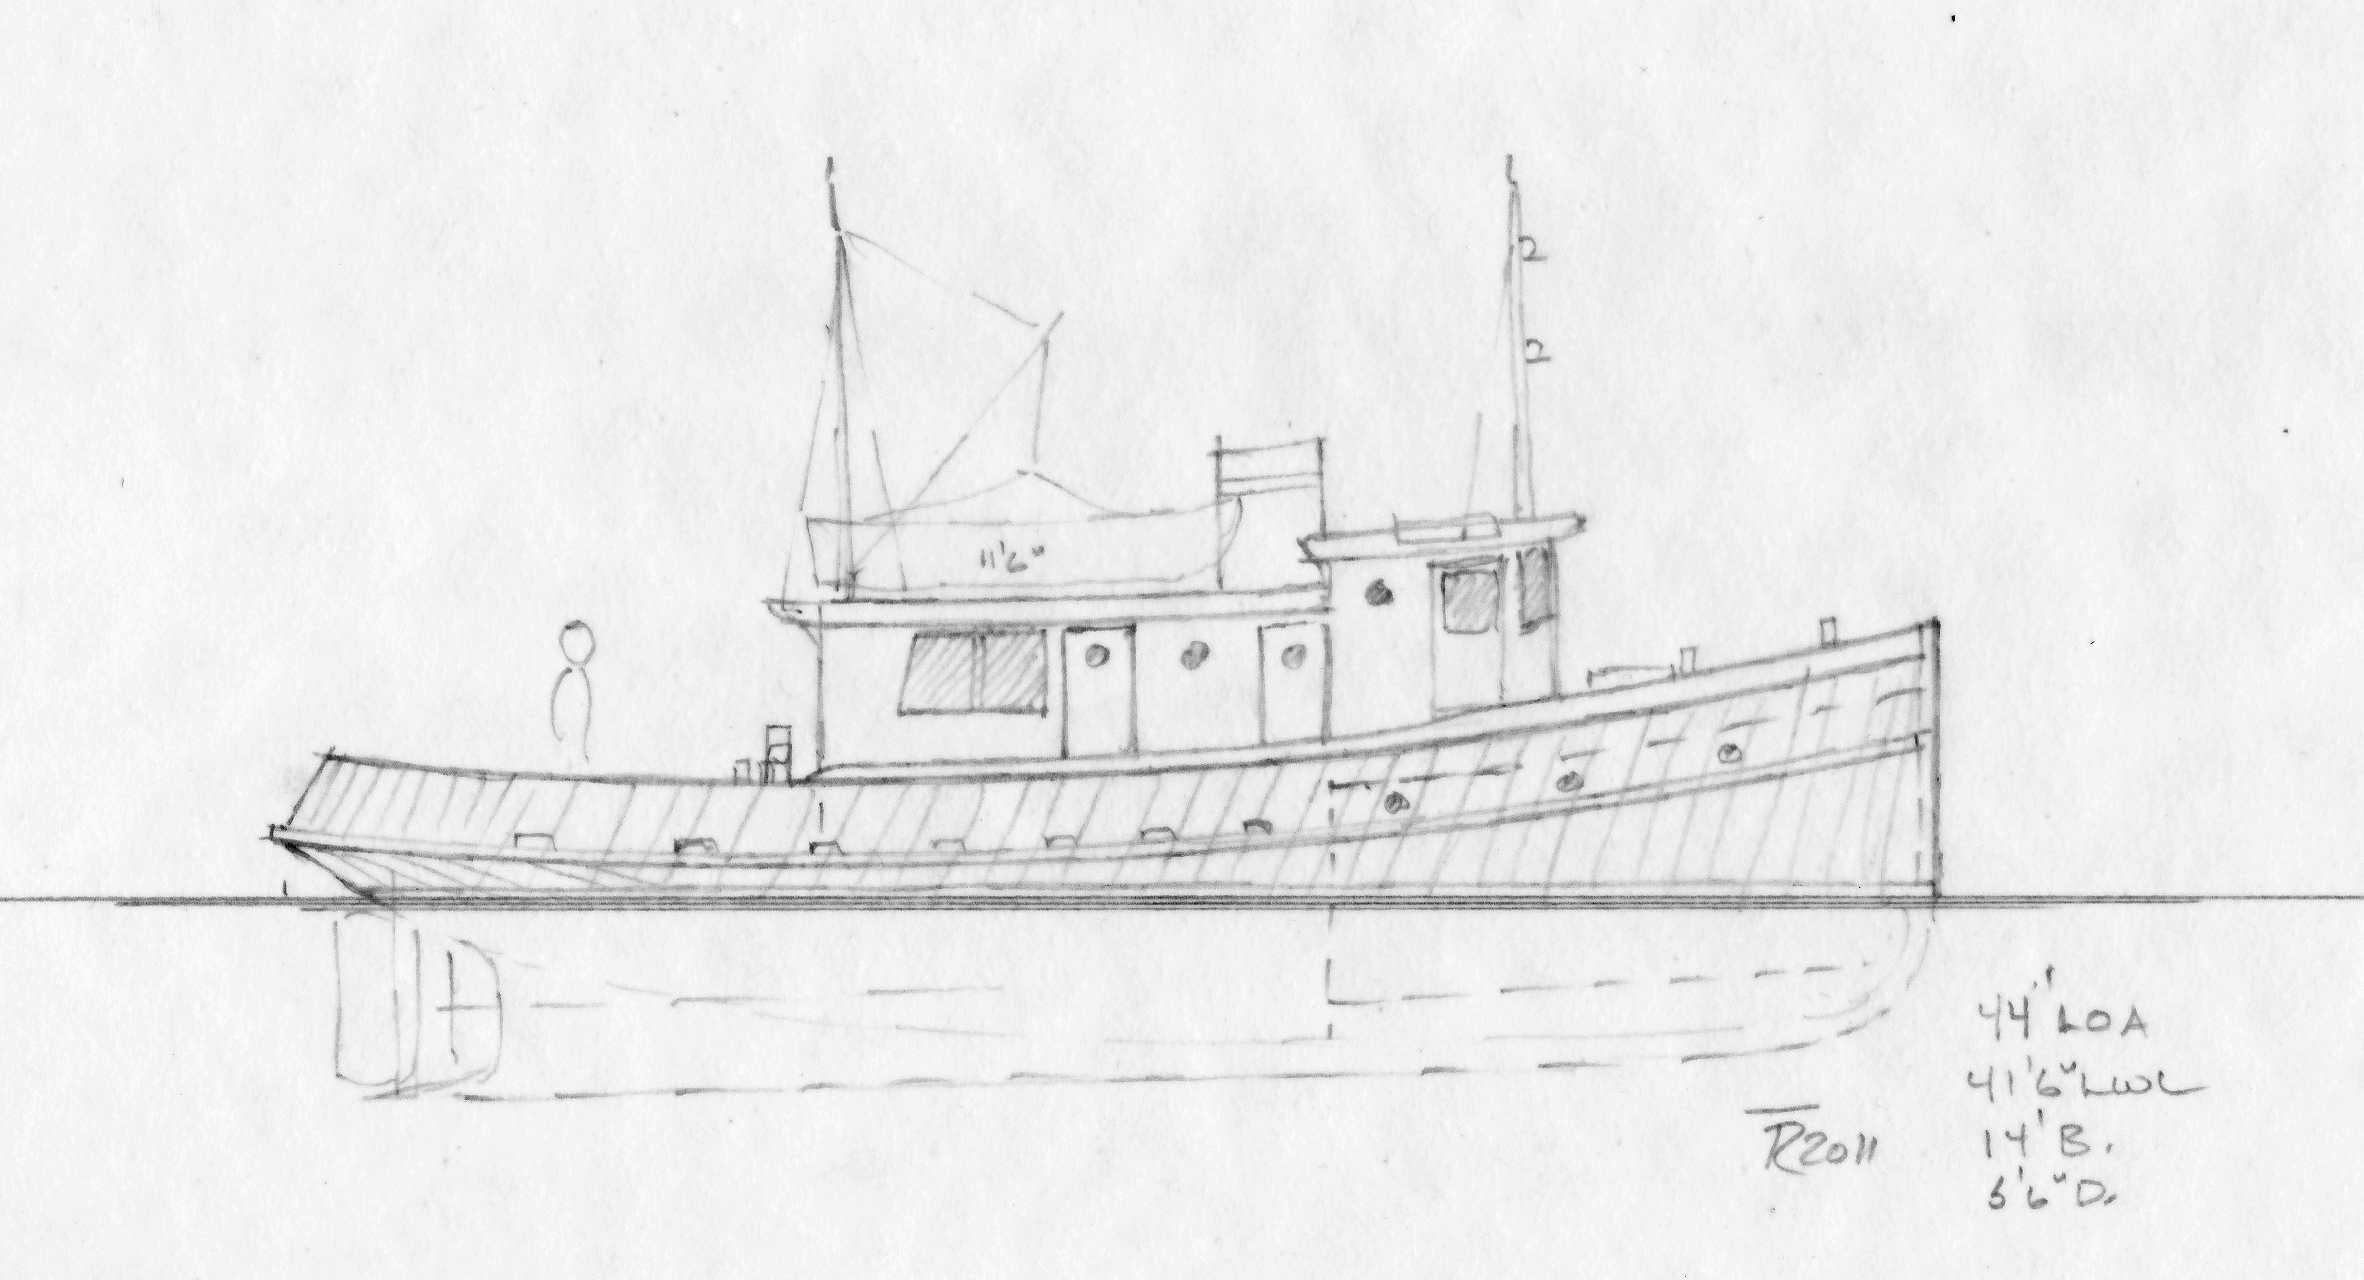 Drawn yacht tugboat A and log a a